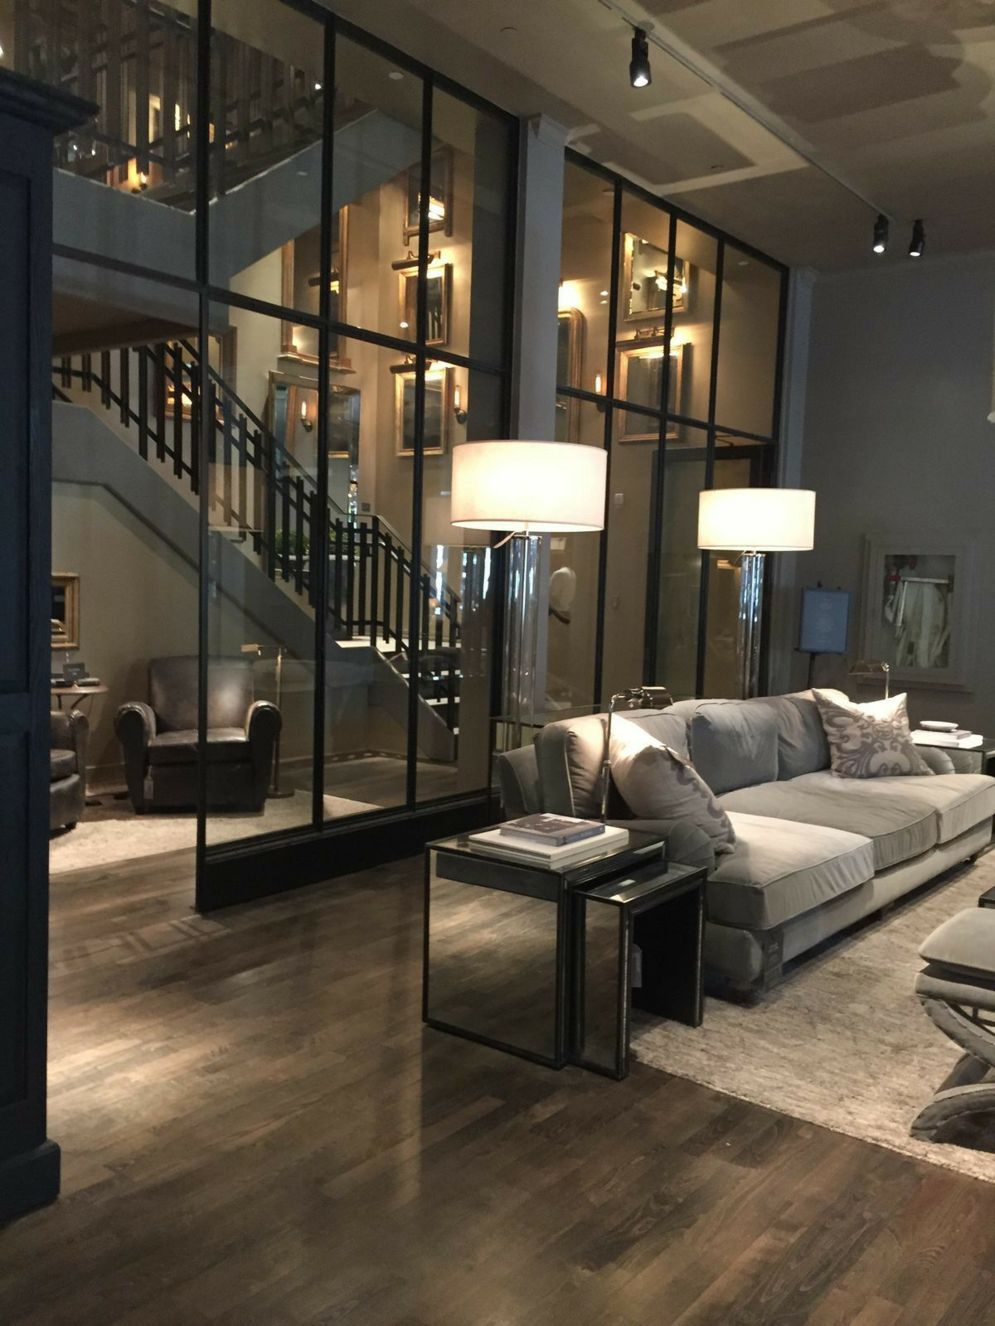 Limitless interior schemes with clever glass partition enlarging wide interior vibes Image 40